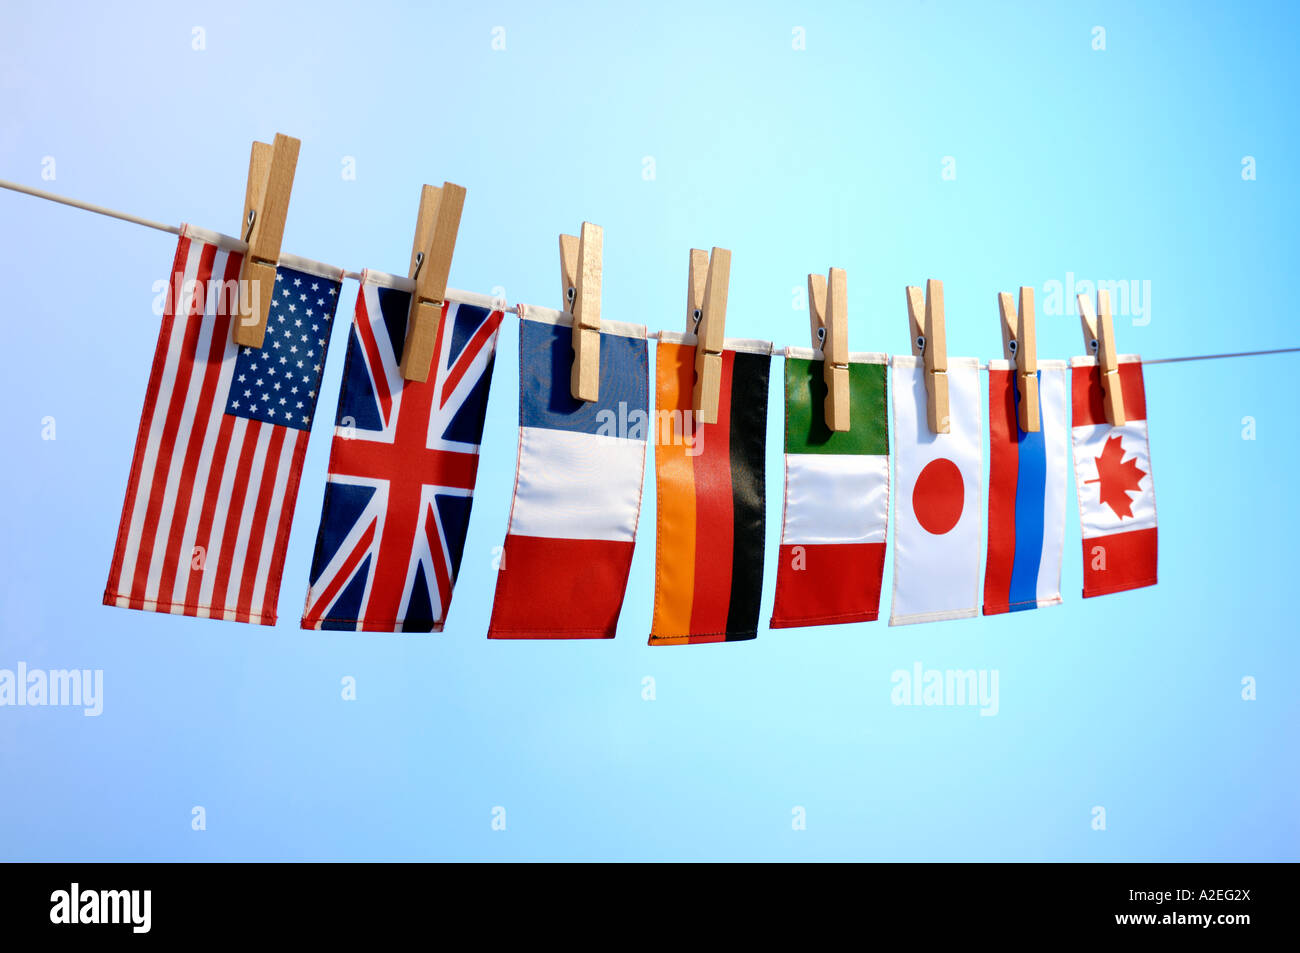 Flags of the G8 nations pegged on a washing line - Stock Image